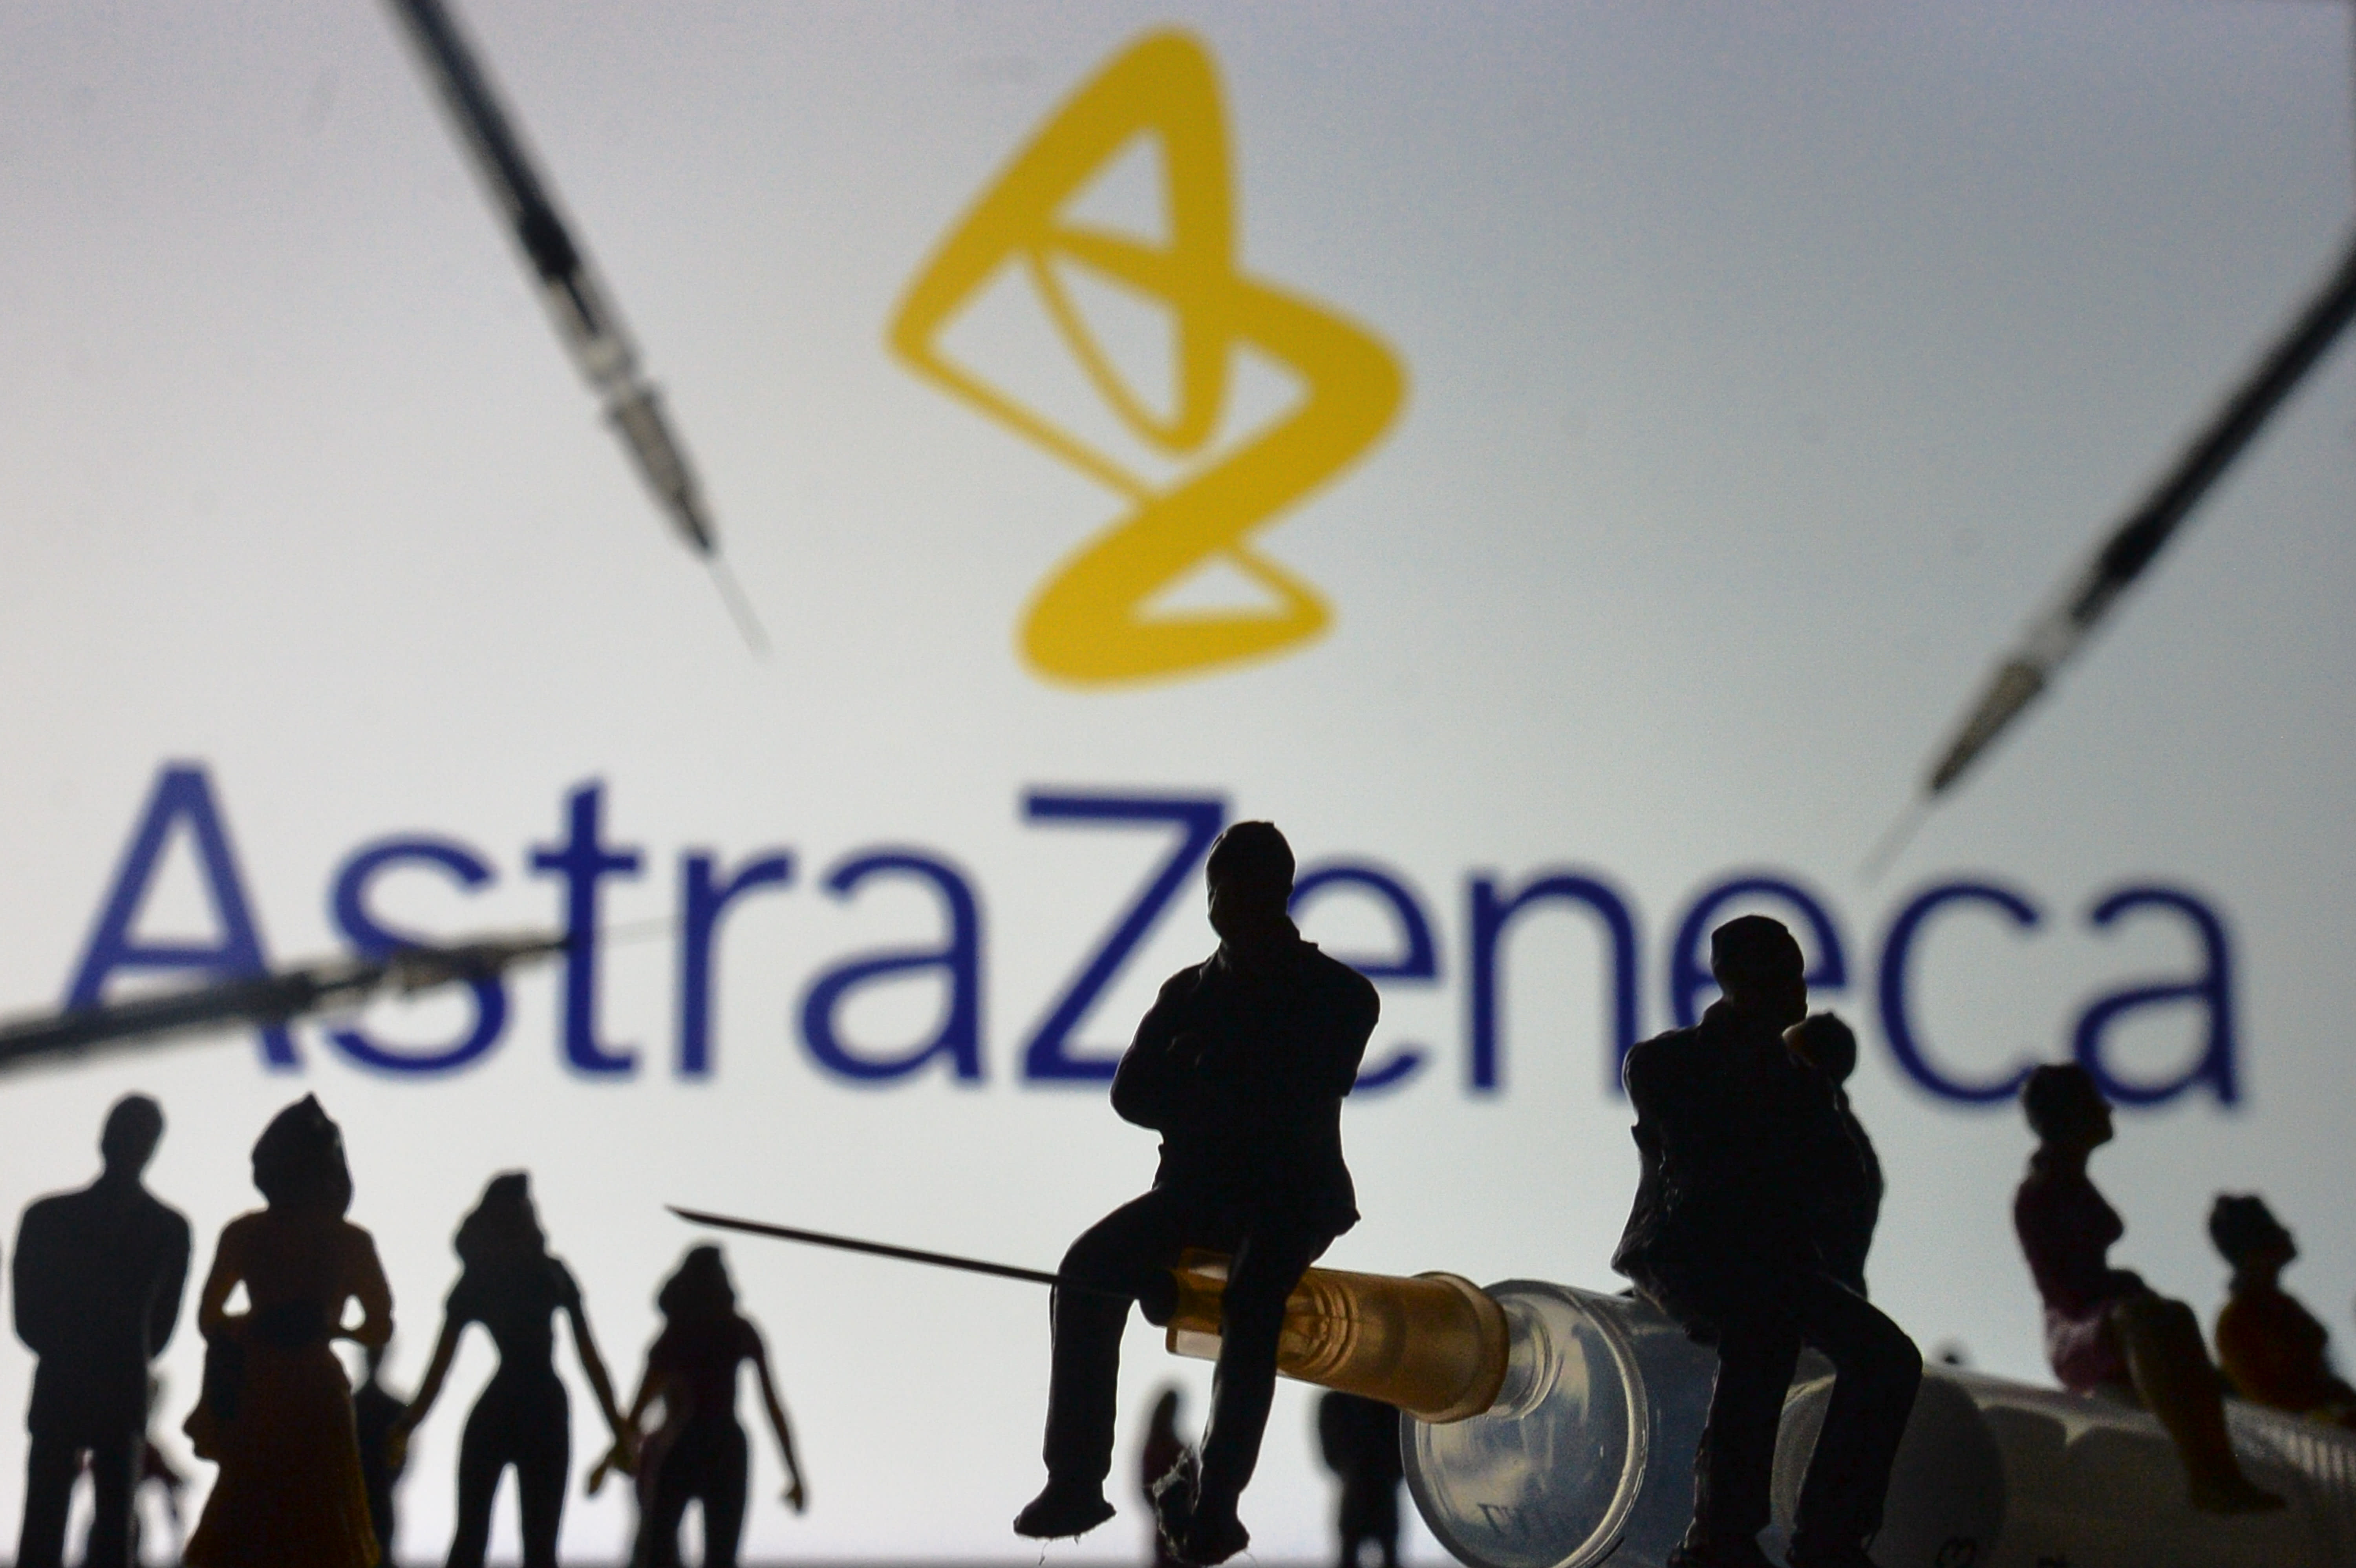 Germany suspends use of AstraZeneca's Covid shot for the under-60s, dealing another blow to drugmaker